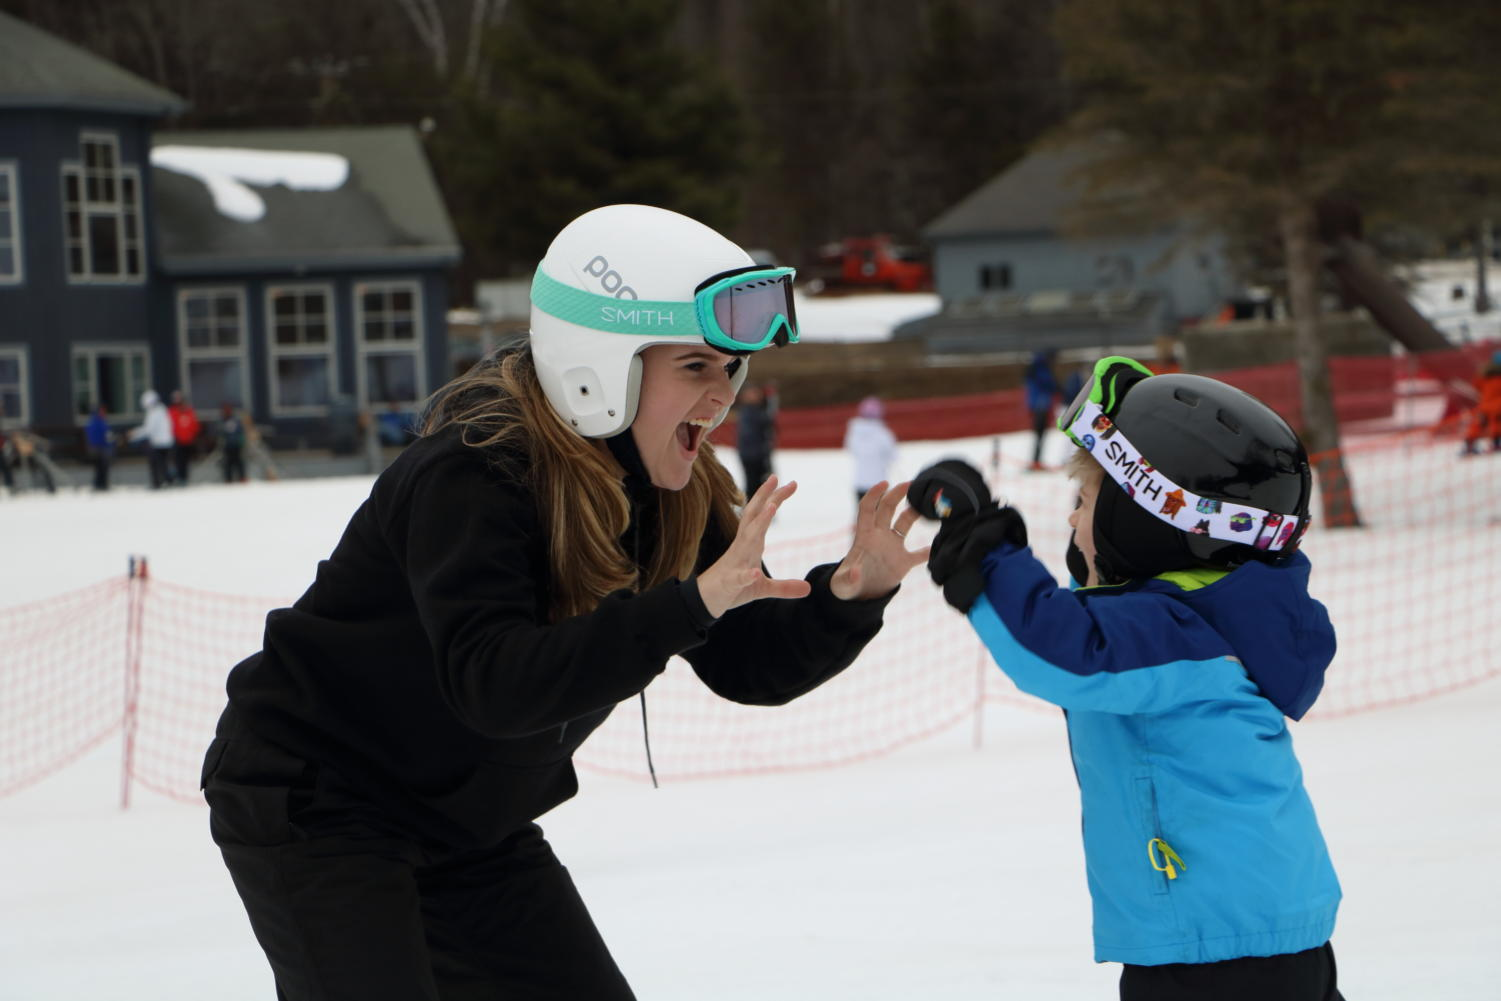 Success in the snow-- Senior Avery Laberge congratulates a young skier during a lesson. Lessons are between one hour and one hour and a half, and anyone from the ages three and older can participate.